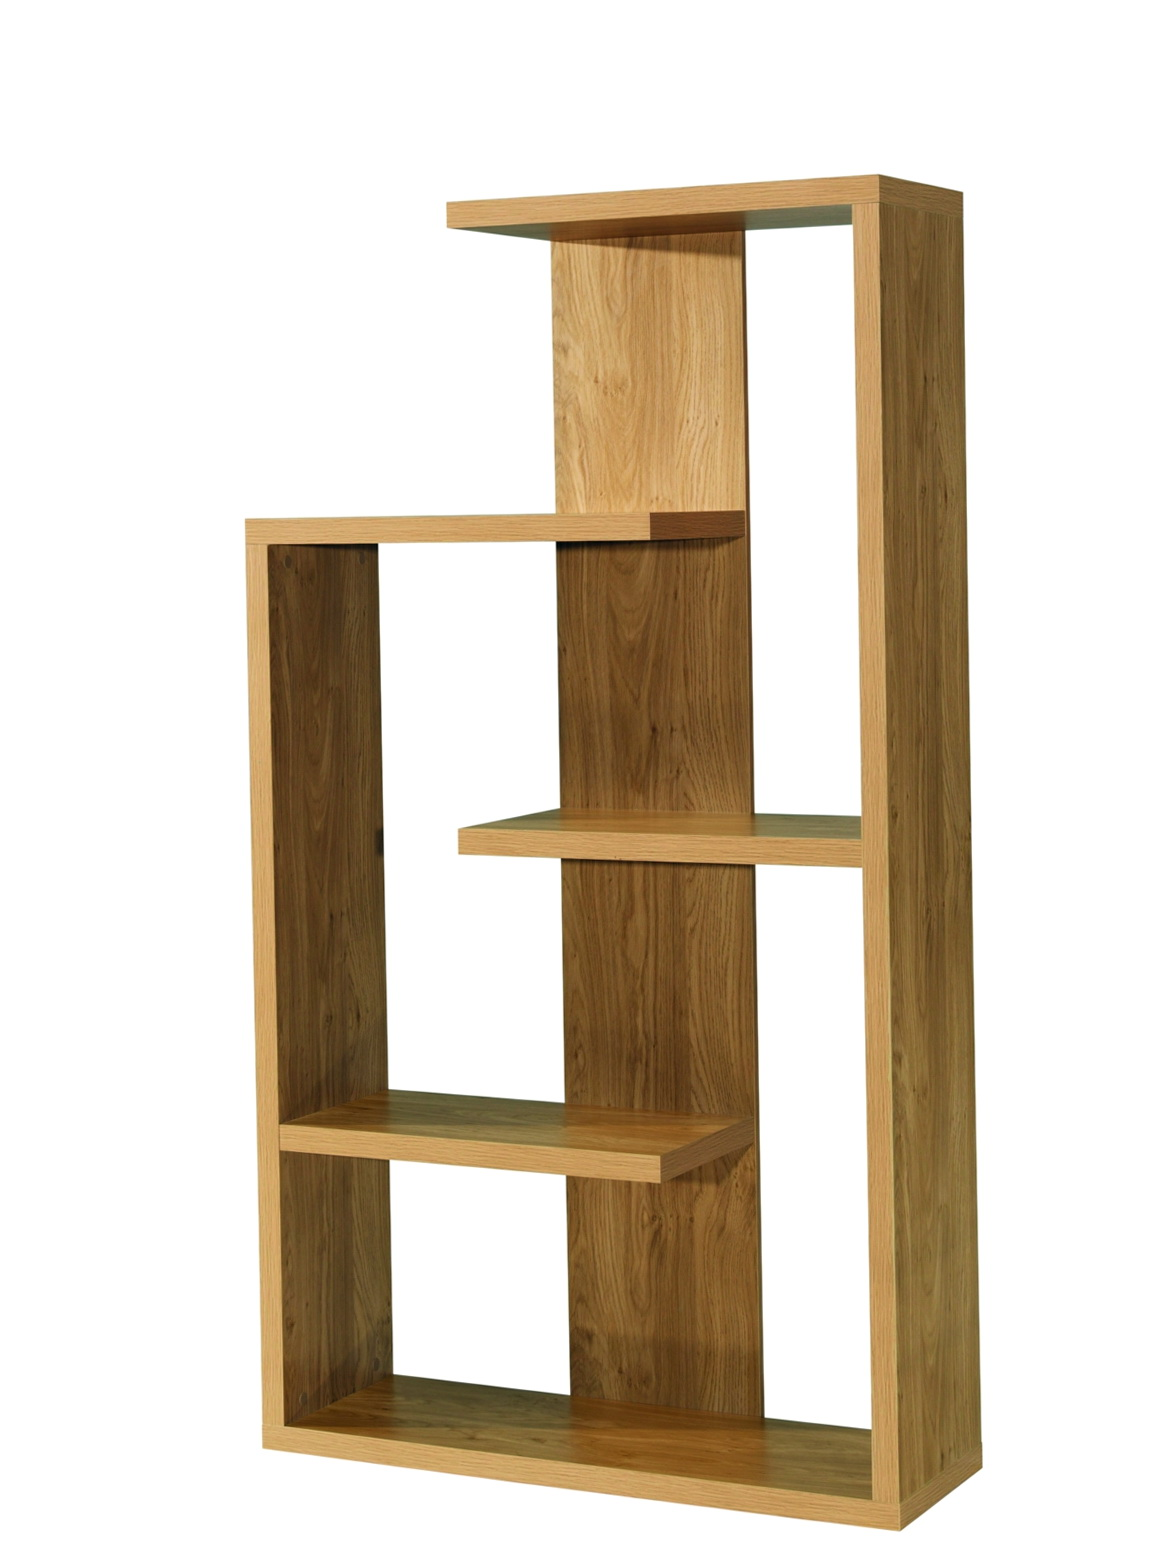 Lack Wall Shelf Unit Review